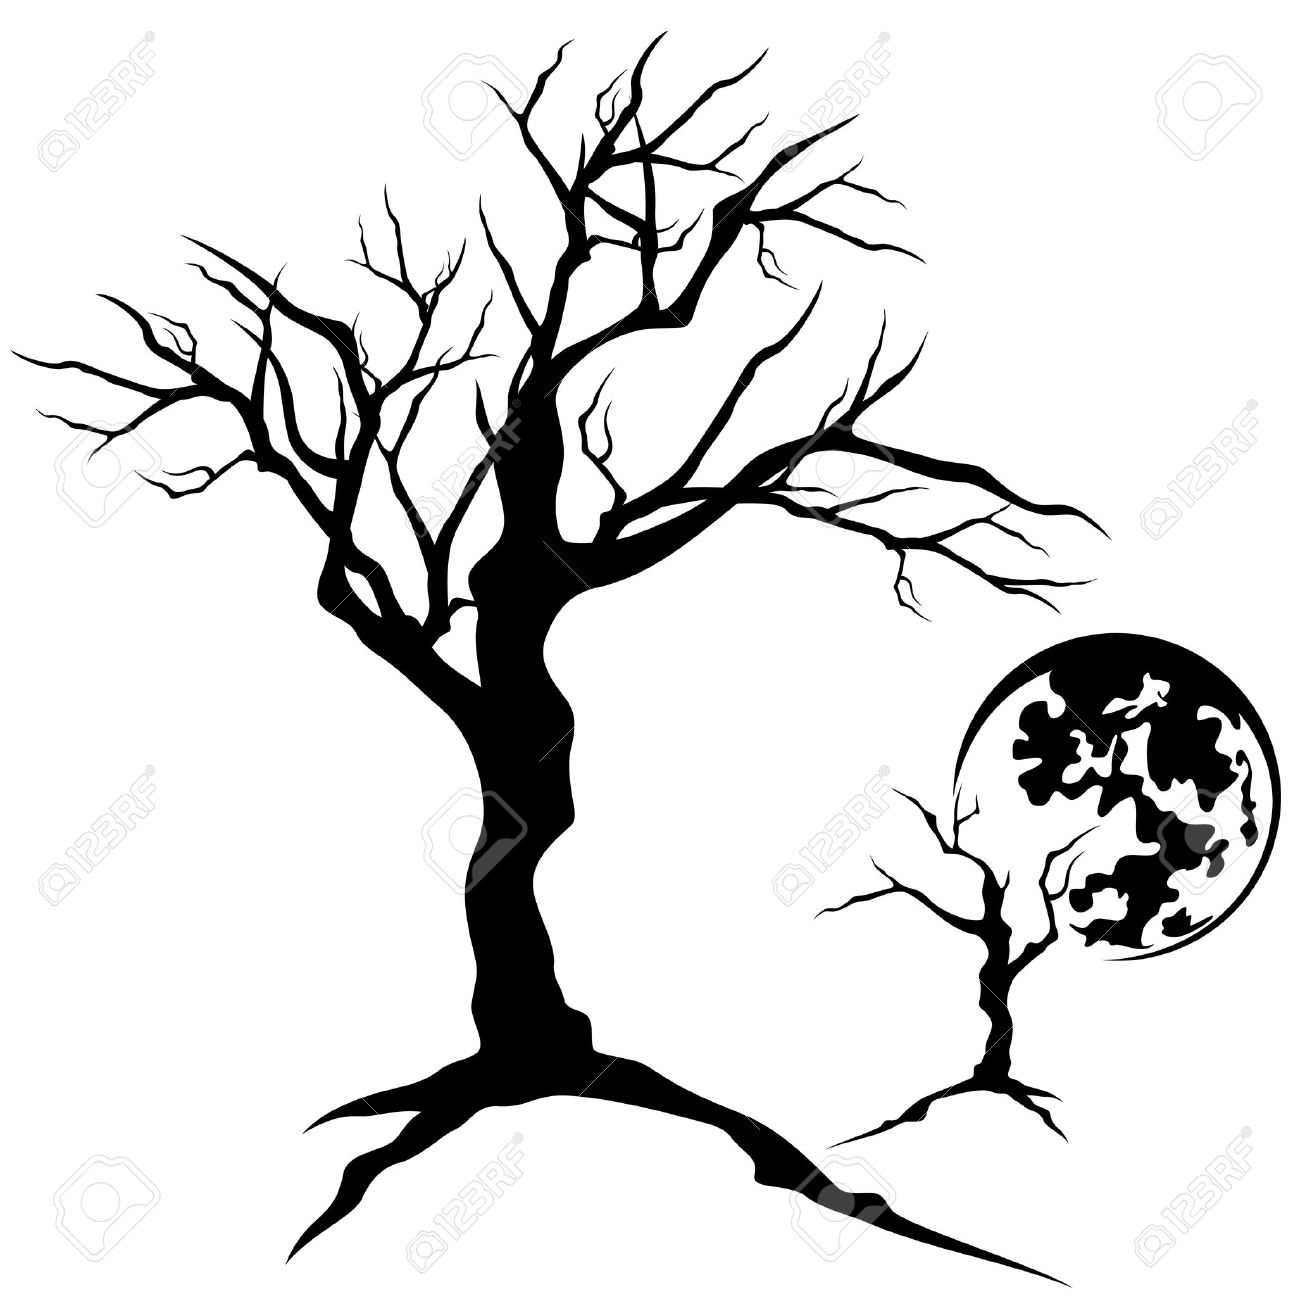 Twisted Tree clipart #3, Download drawings